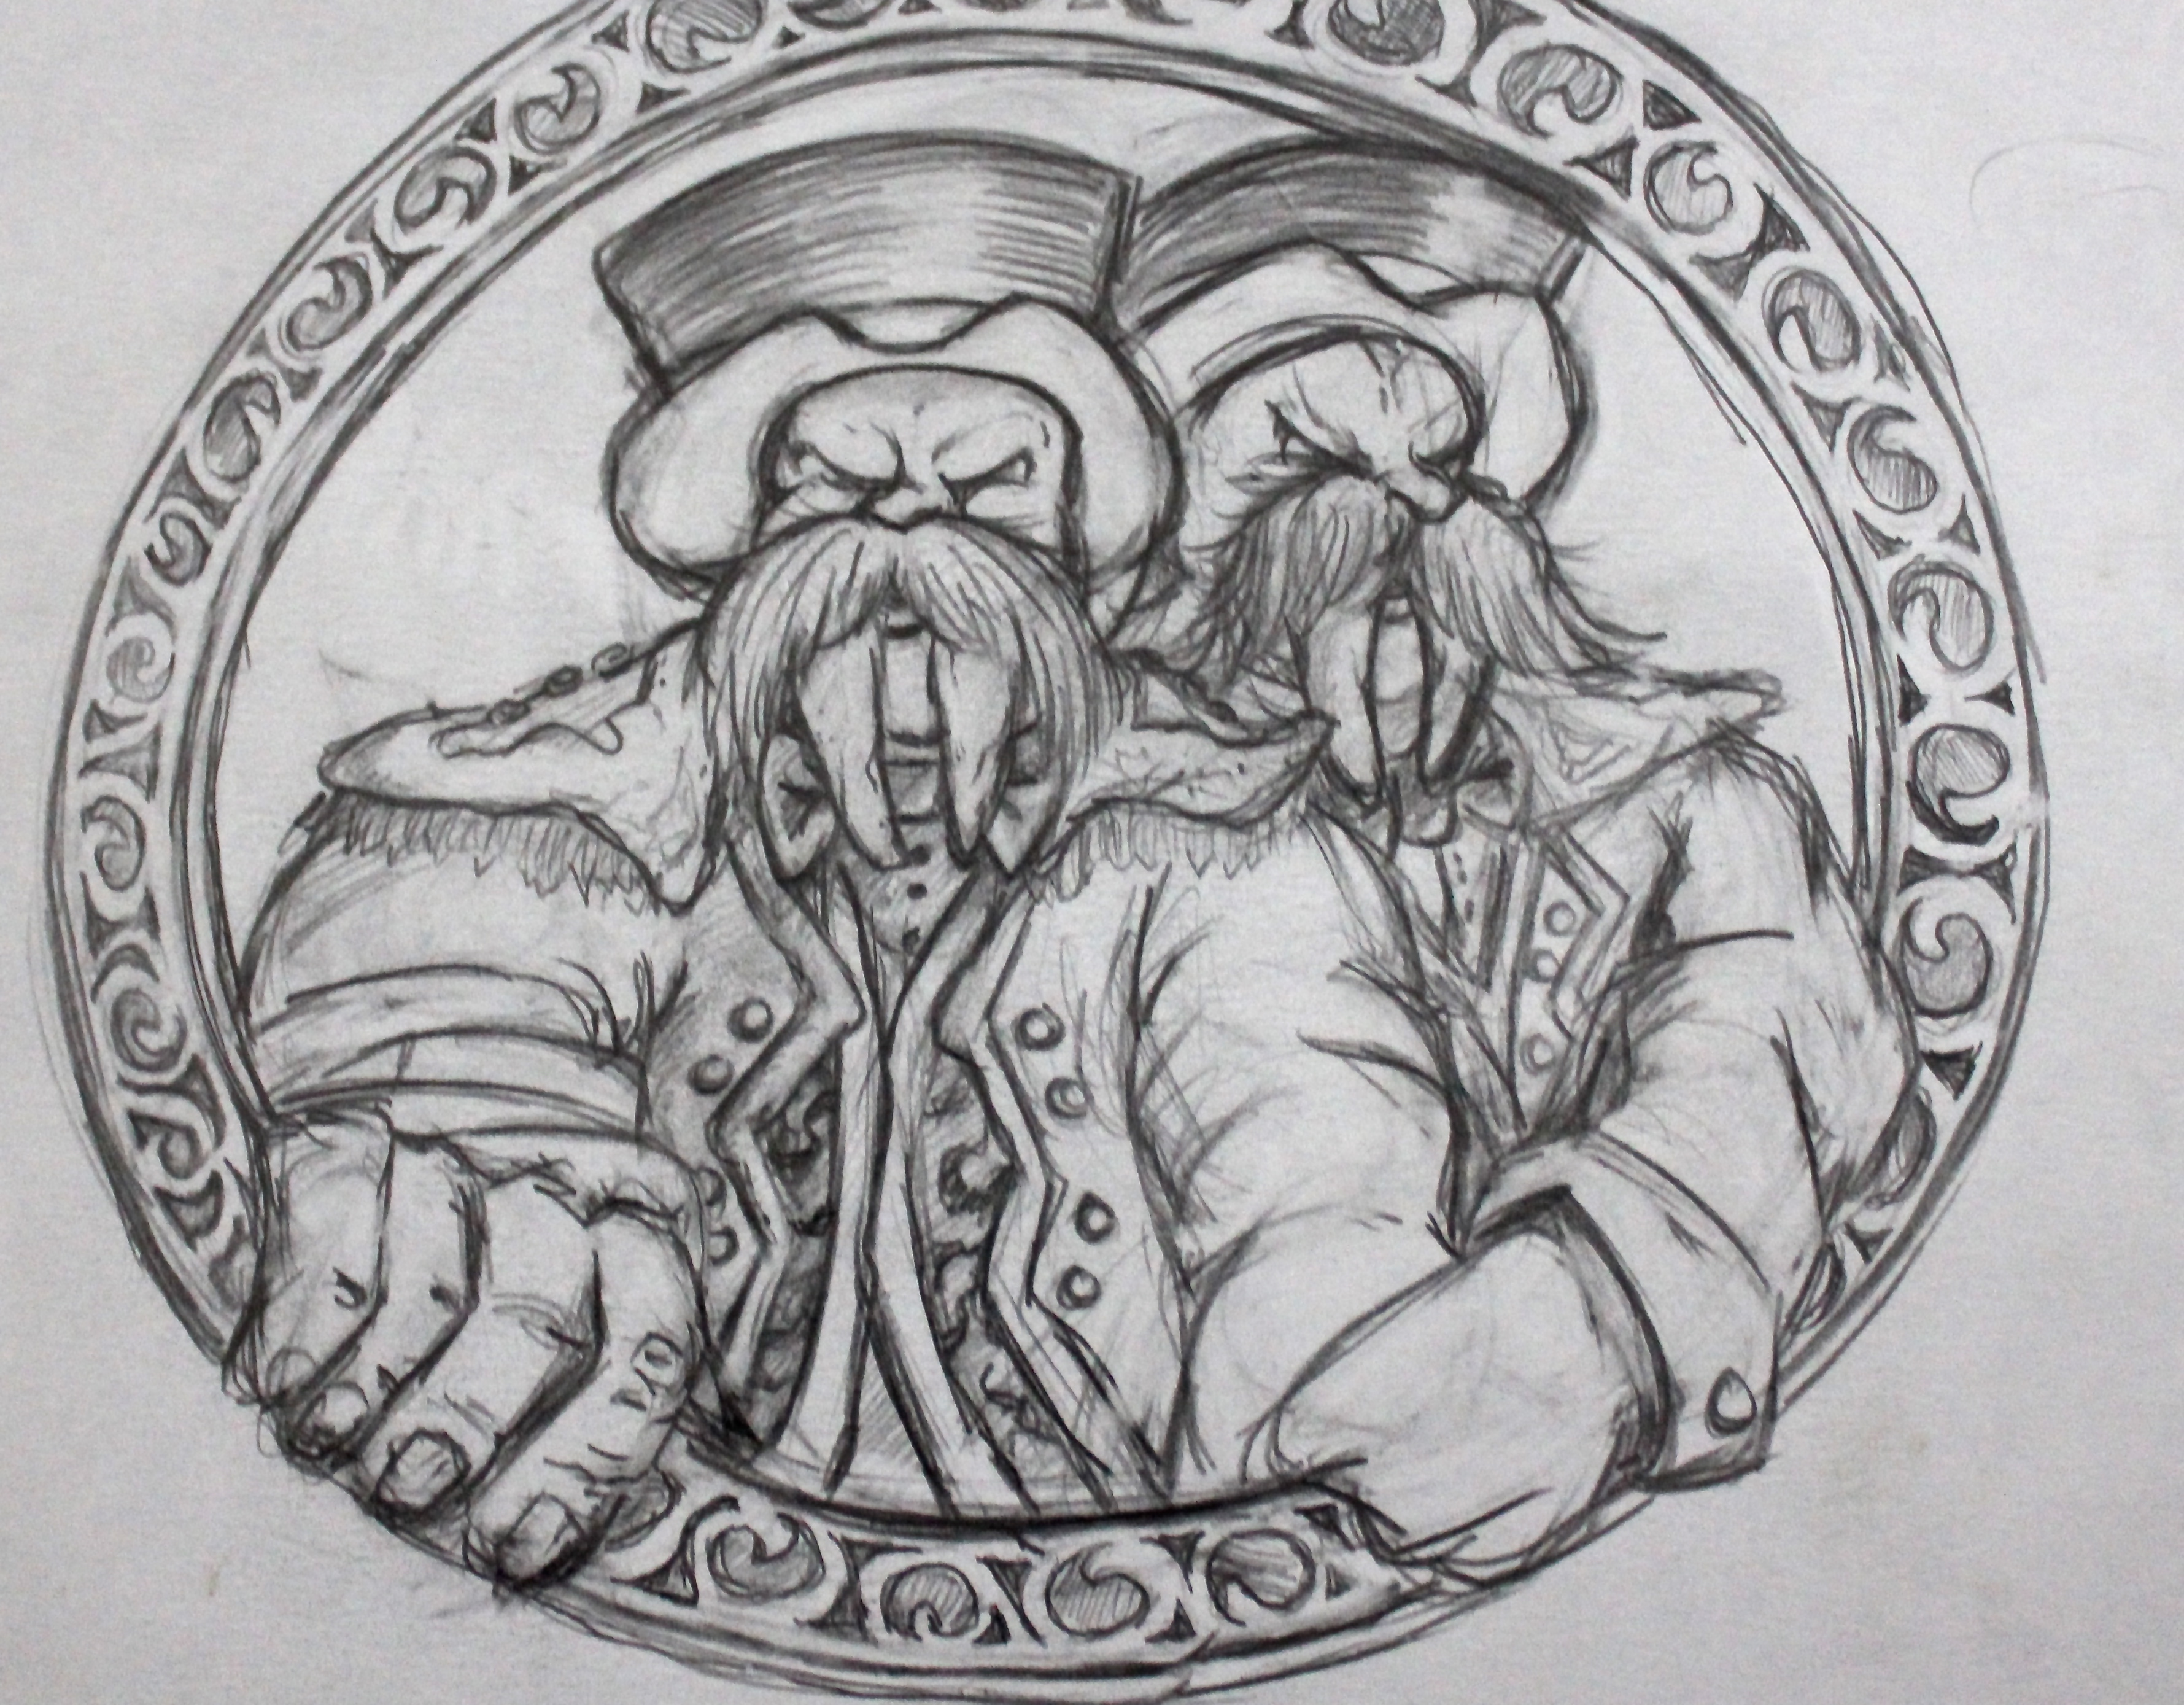 The Tusk Brothers